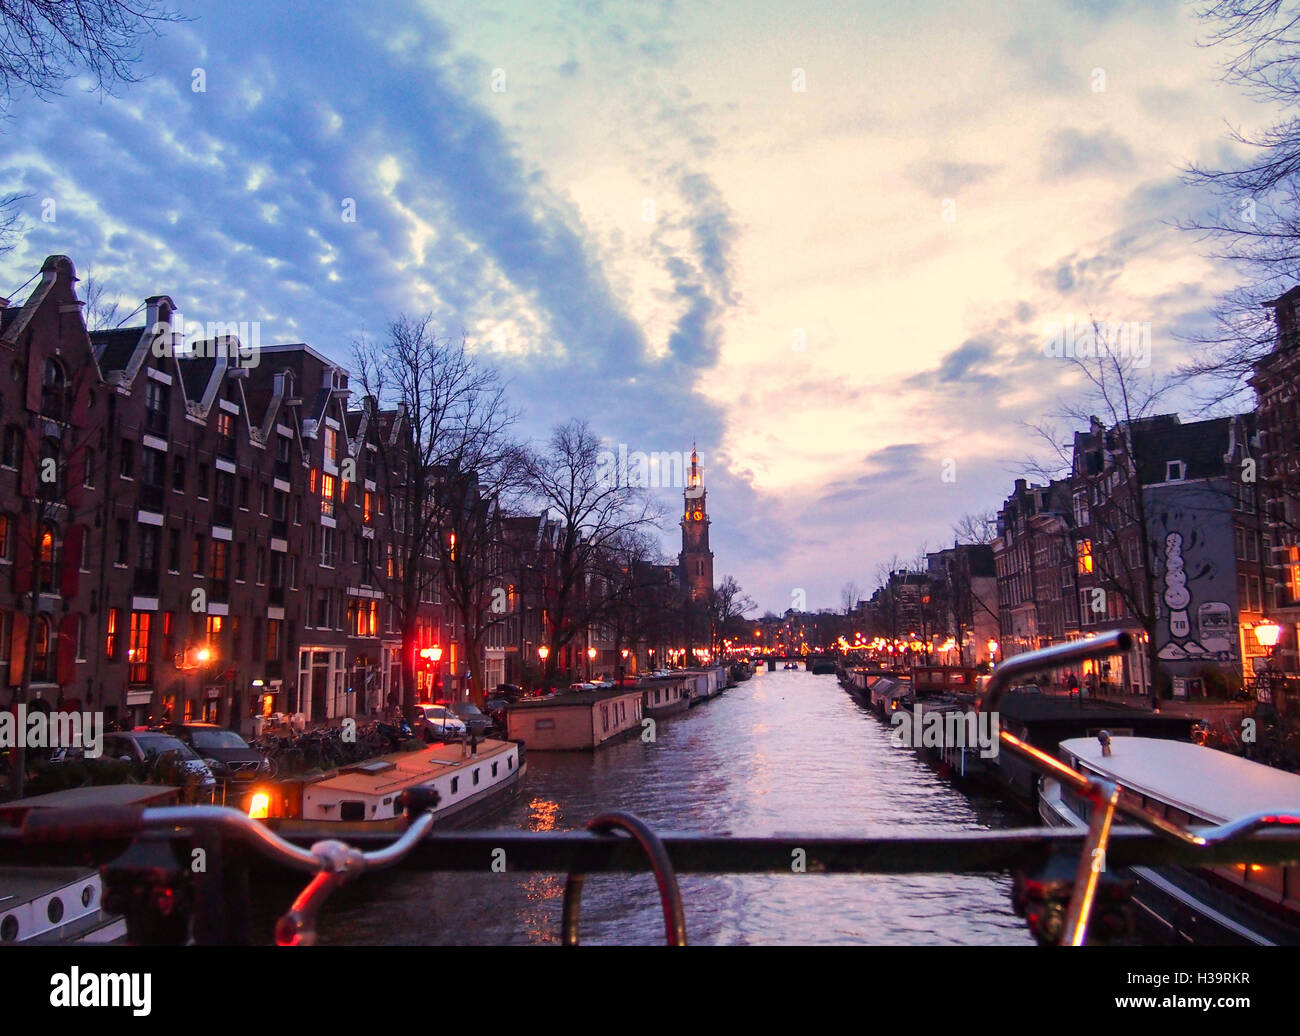 View of a canal from the bridge in Amsterdam at twilight during winter Stock Photo